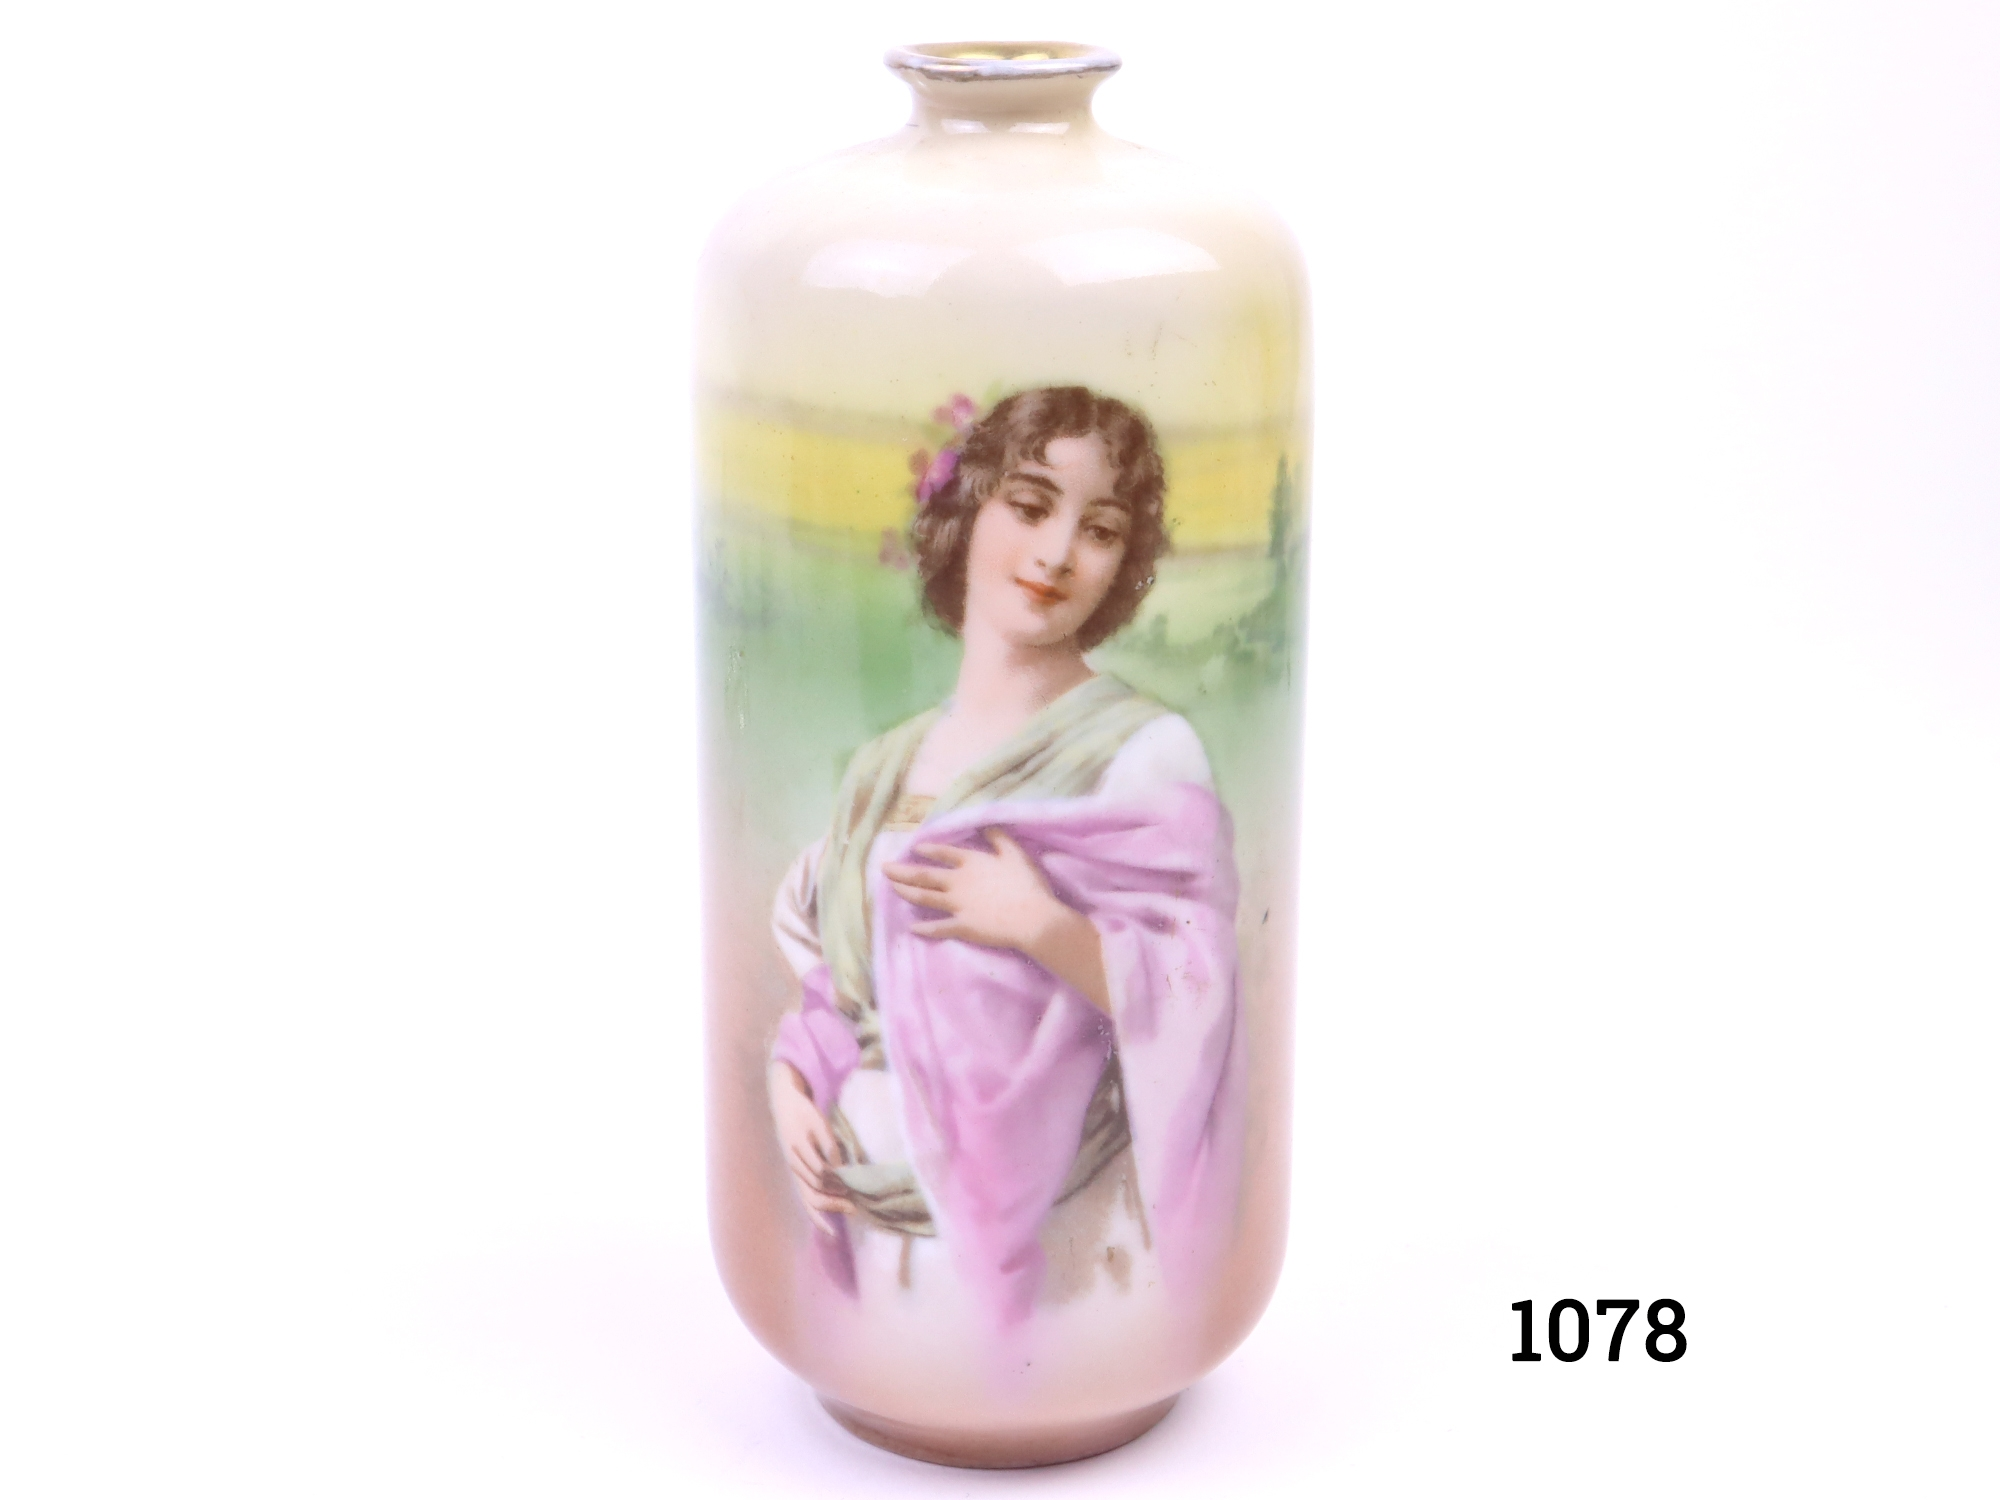 Royal Bayreuth small porcelain vase with hand-painted young maiden and rural background (Some wear to the gilt around the lip) Measures 50mm in diameter at base and 18mm across lip Main photo showing image of lady straight on